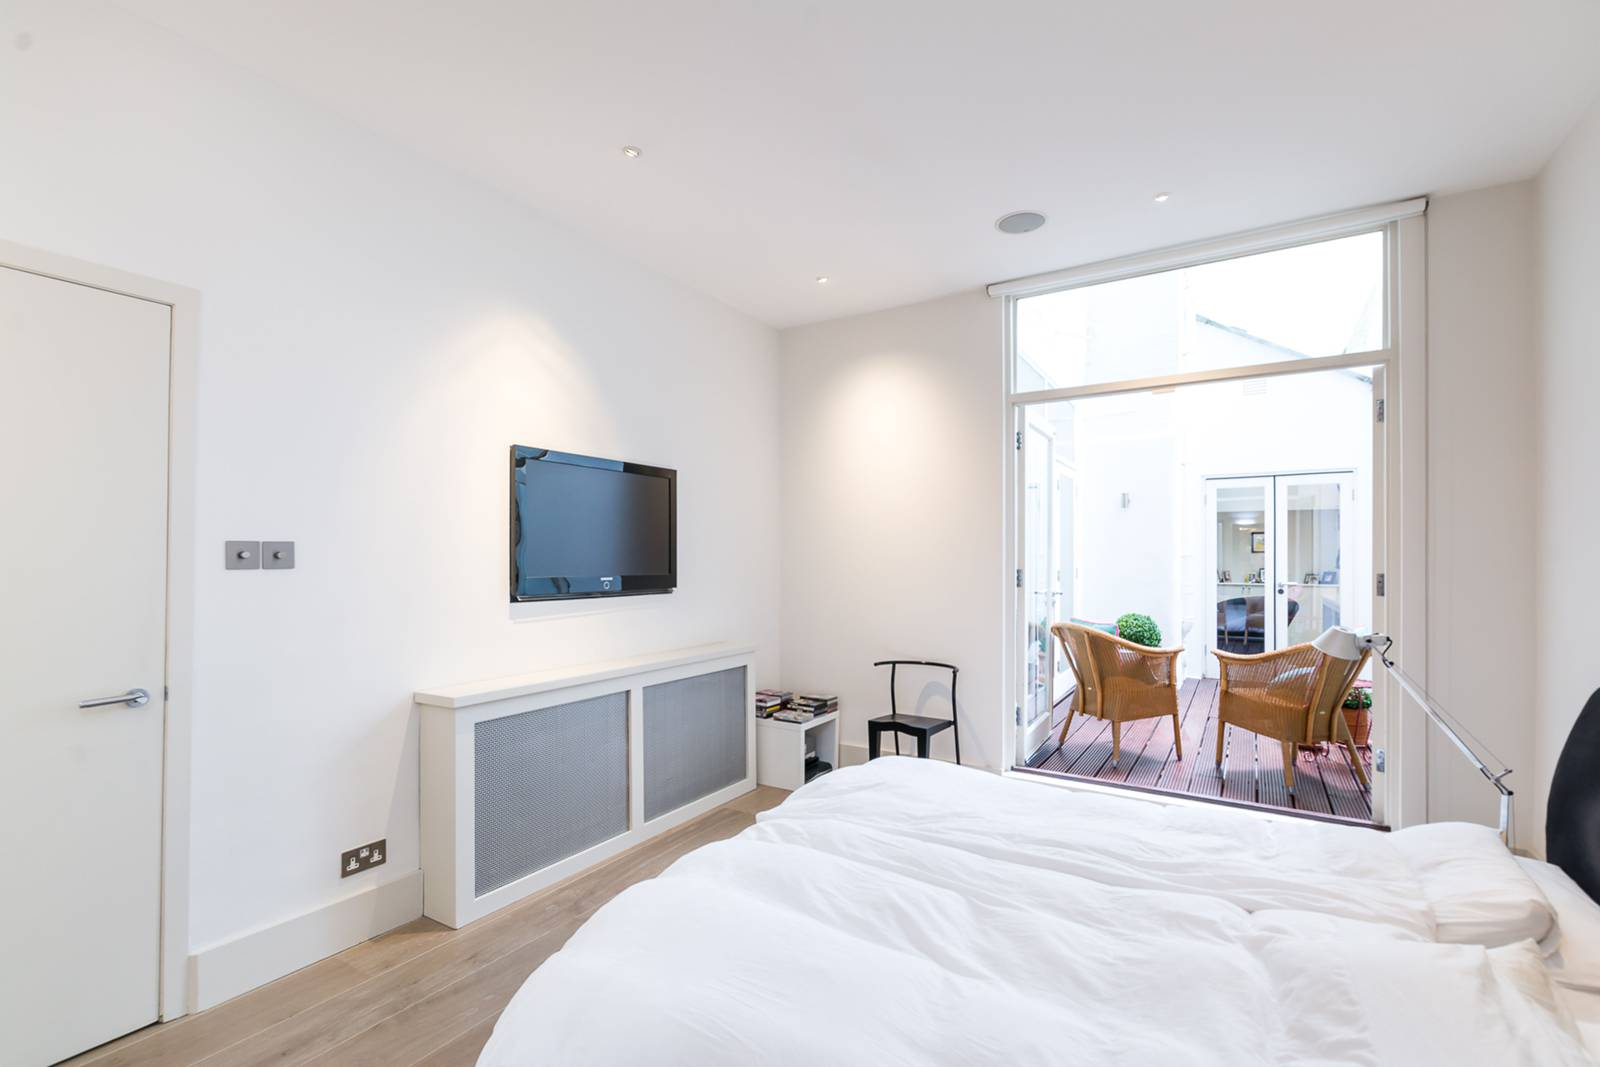 2 Bedroom Garden Flat London 2 Bedroom Flat For Sale In Cornwall Gardens South